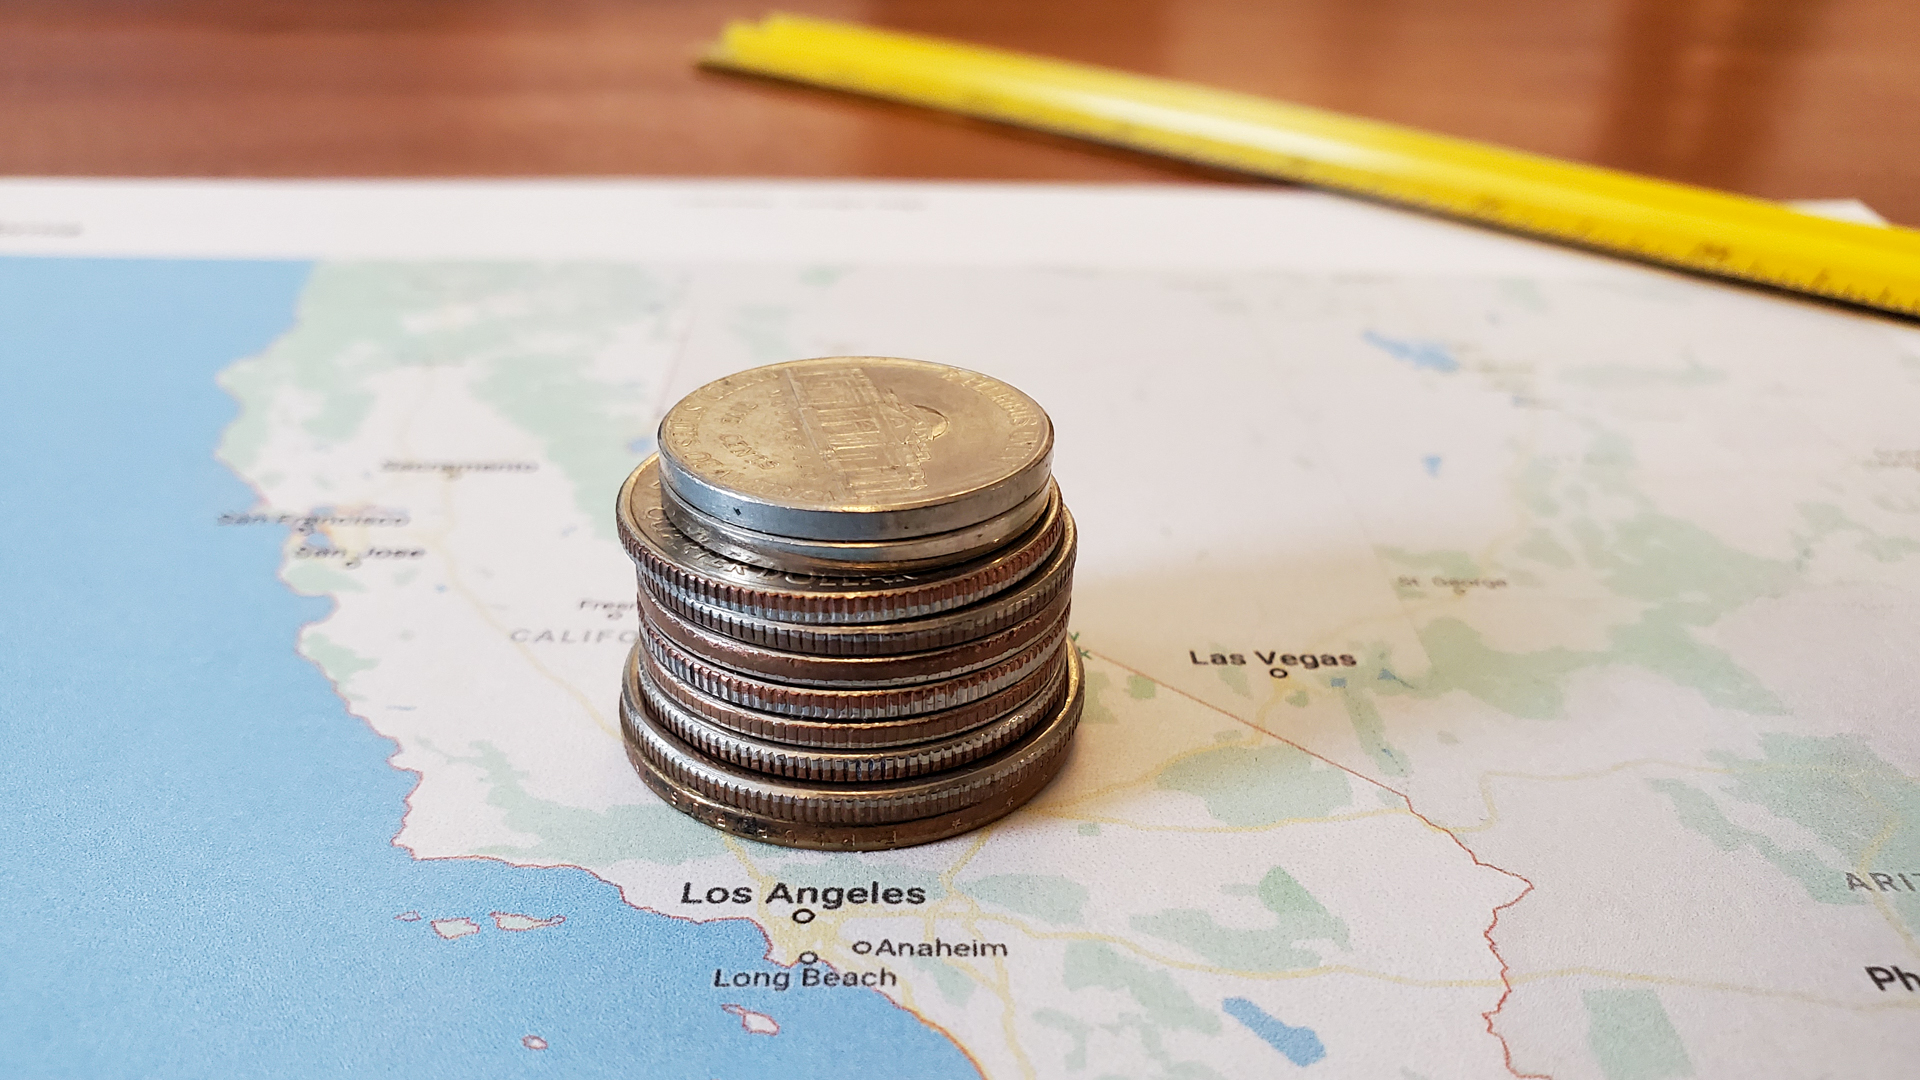 Coins stacked on top of a printed map of the Los Angeles area